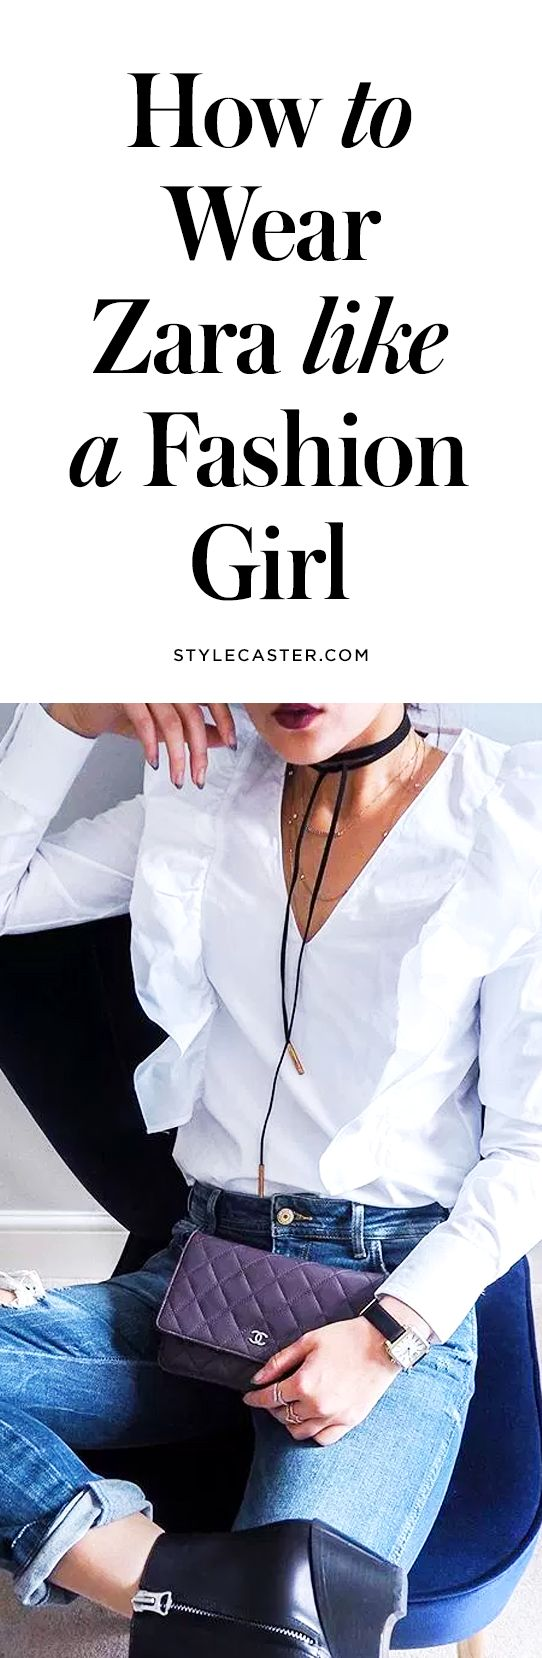 23 Cool Zara Blogger Outfit Ideas for 2017   How to wear Zara like a Street Style Star... @stylecaster